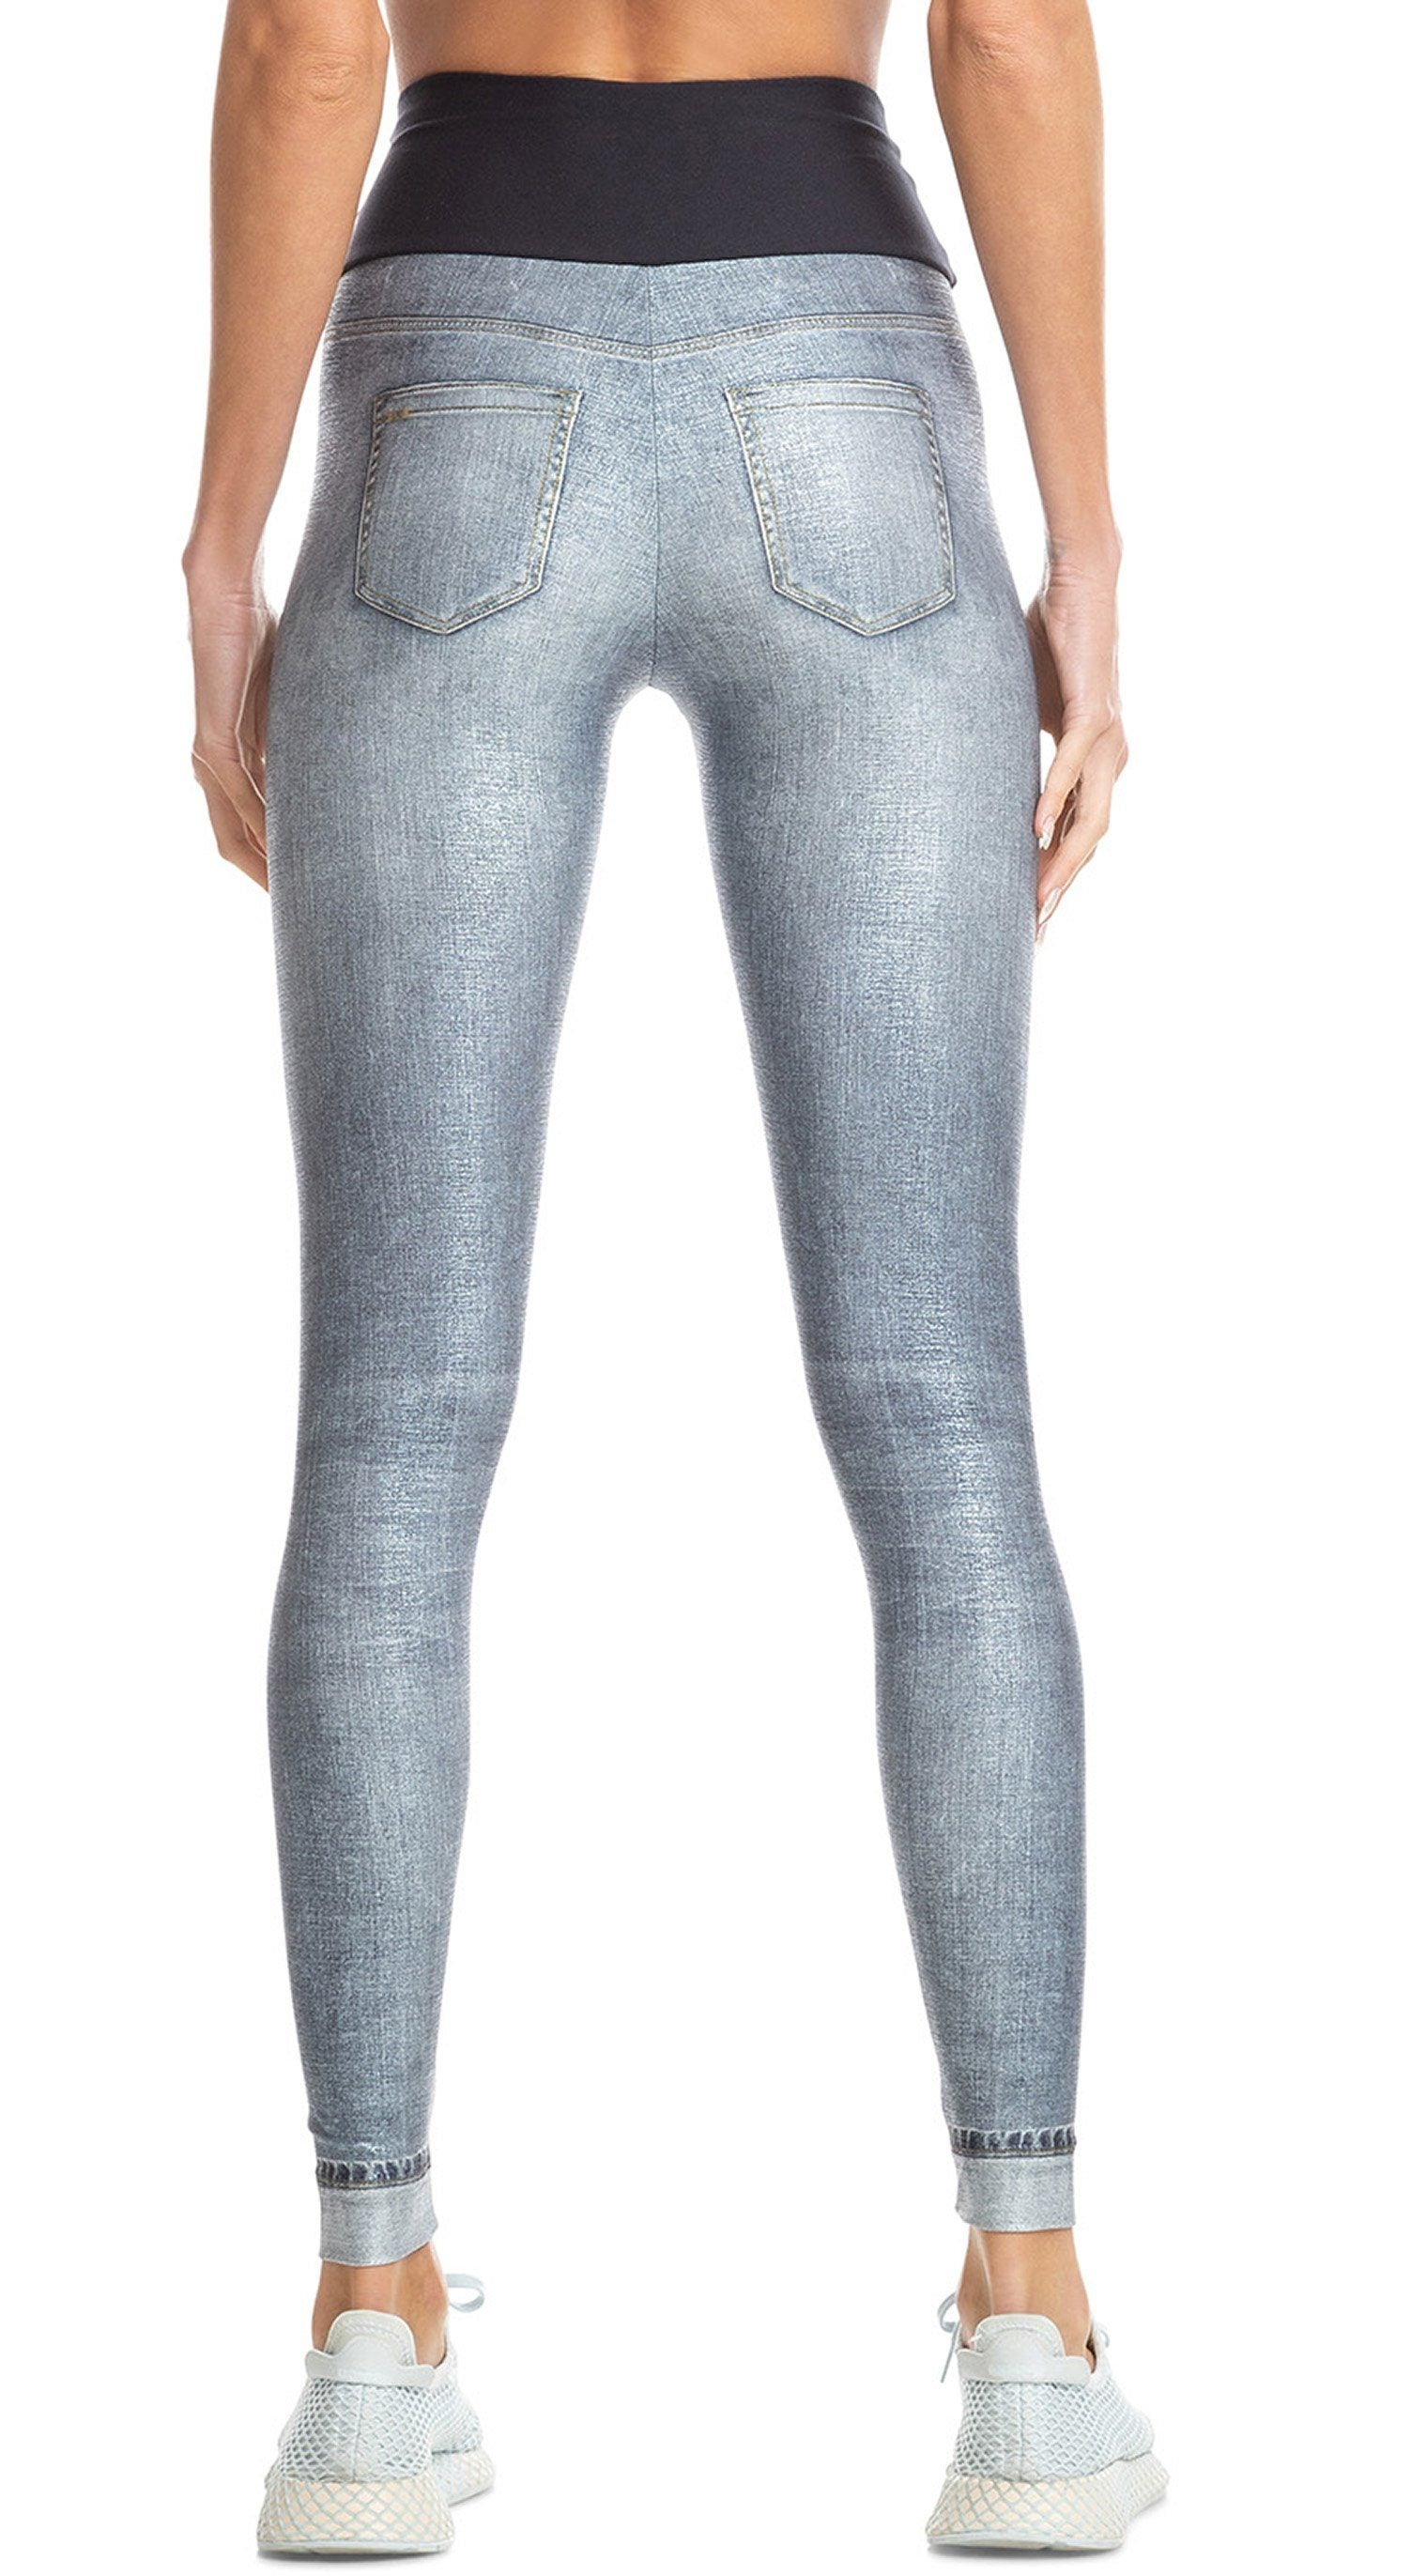 Brazilian Fake Jeans Legging - Mareled Jeans Legging